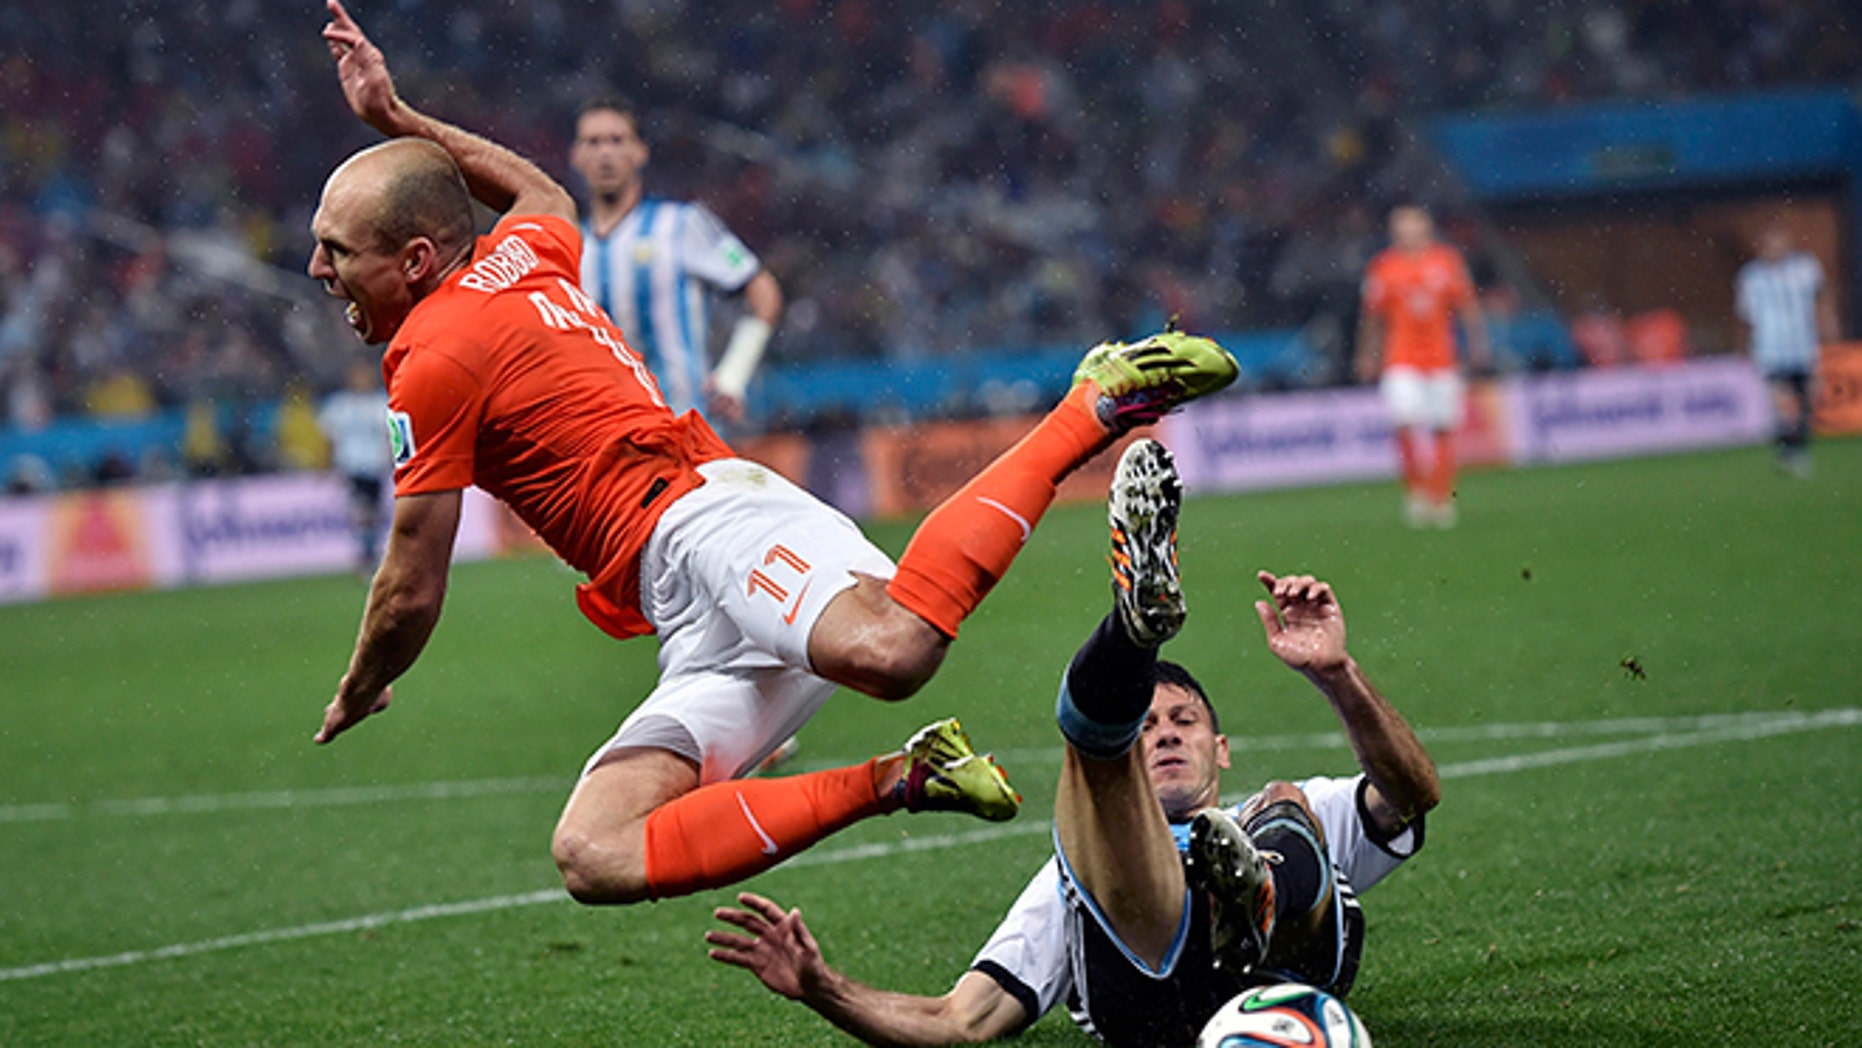 Netherlands' Arjen Robben goes down under a challenge from Argentina's Martin Demichelis during the World Cup semifinal soccer match between the Netherlands and Argentina at the Itaquerao Stadium in Sao Paulo Brazil, Wednesday, July 9, 2014. (AP Photo/Martin Meissner)